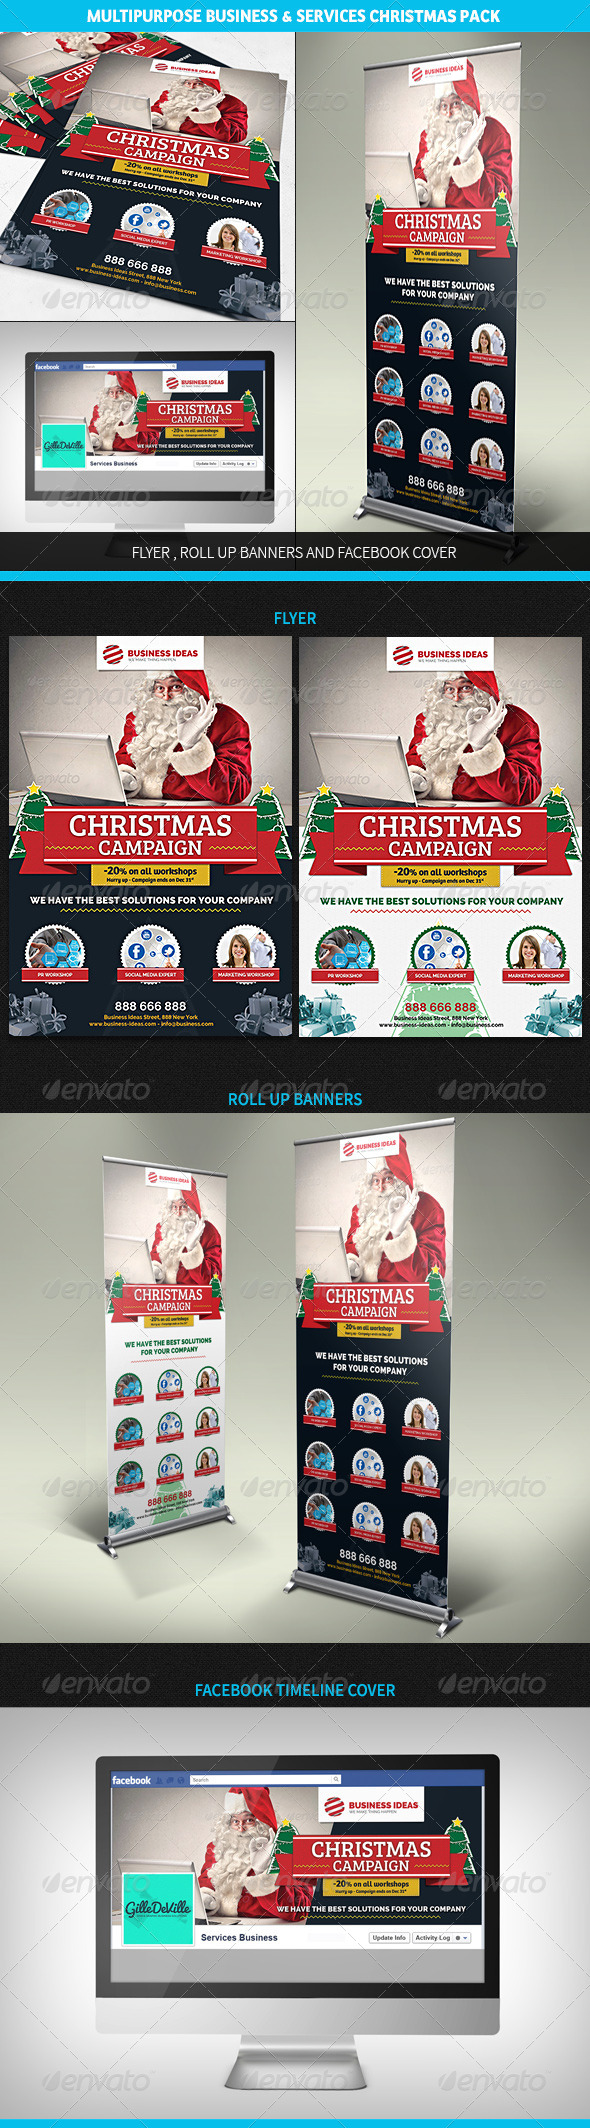 GraphicRiver Multipurpose Corporate Business Christmas Pack 6244546